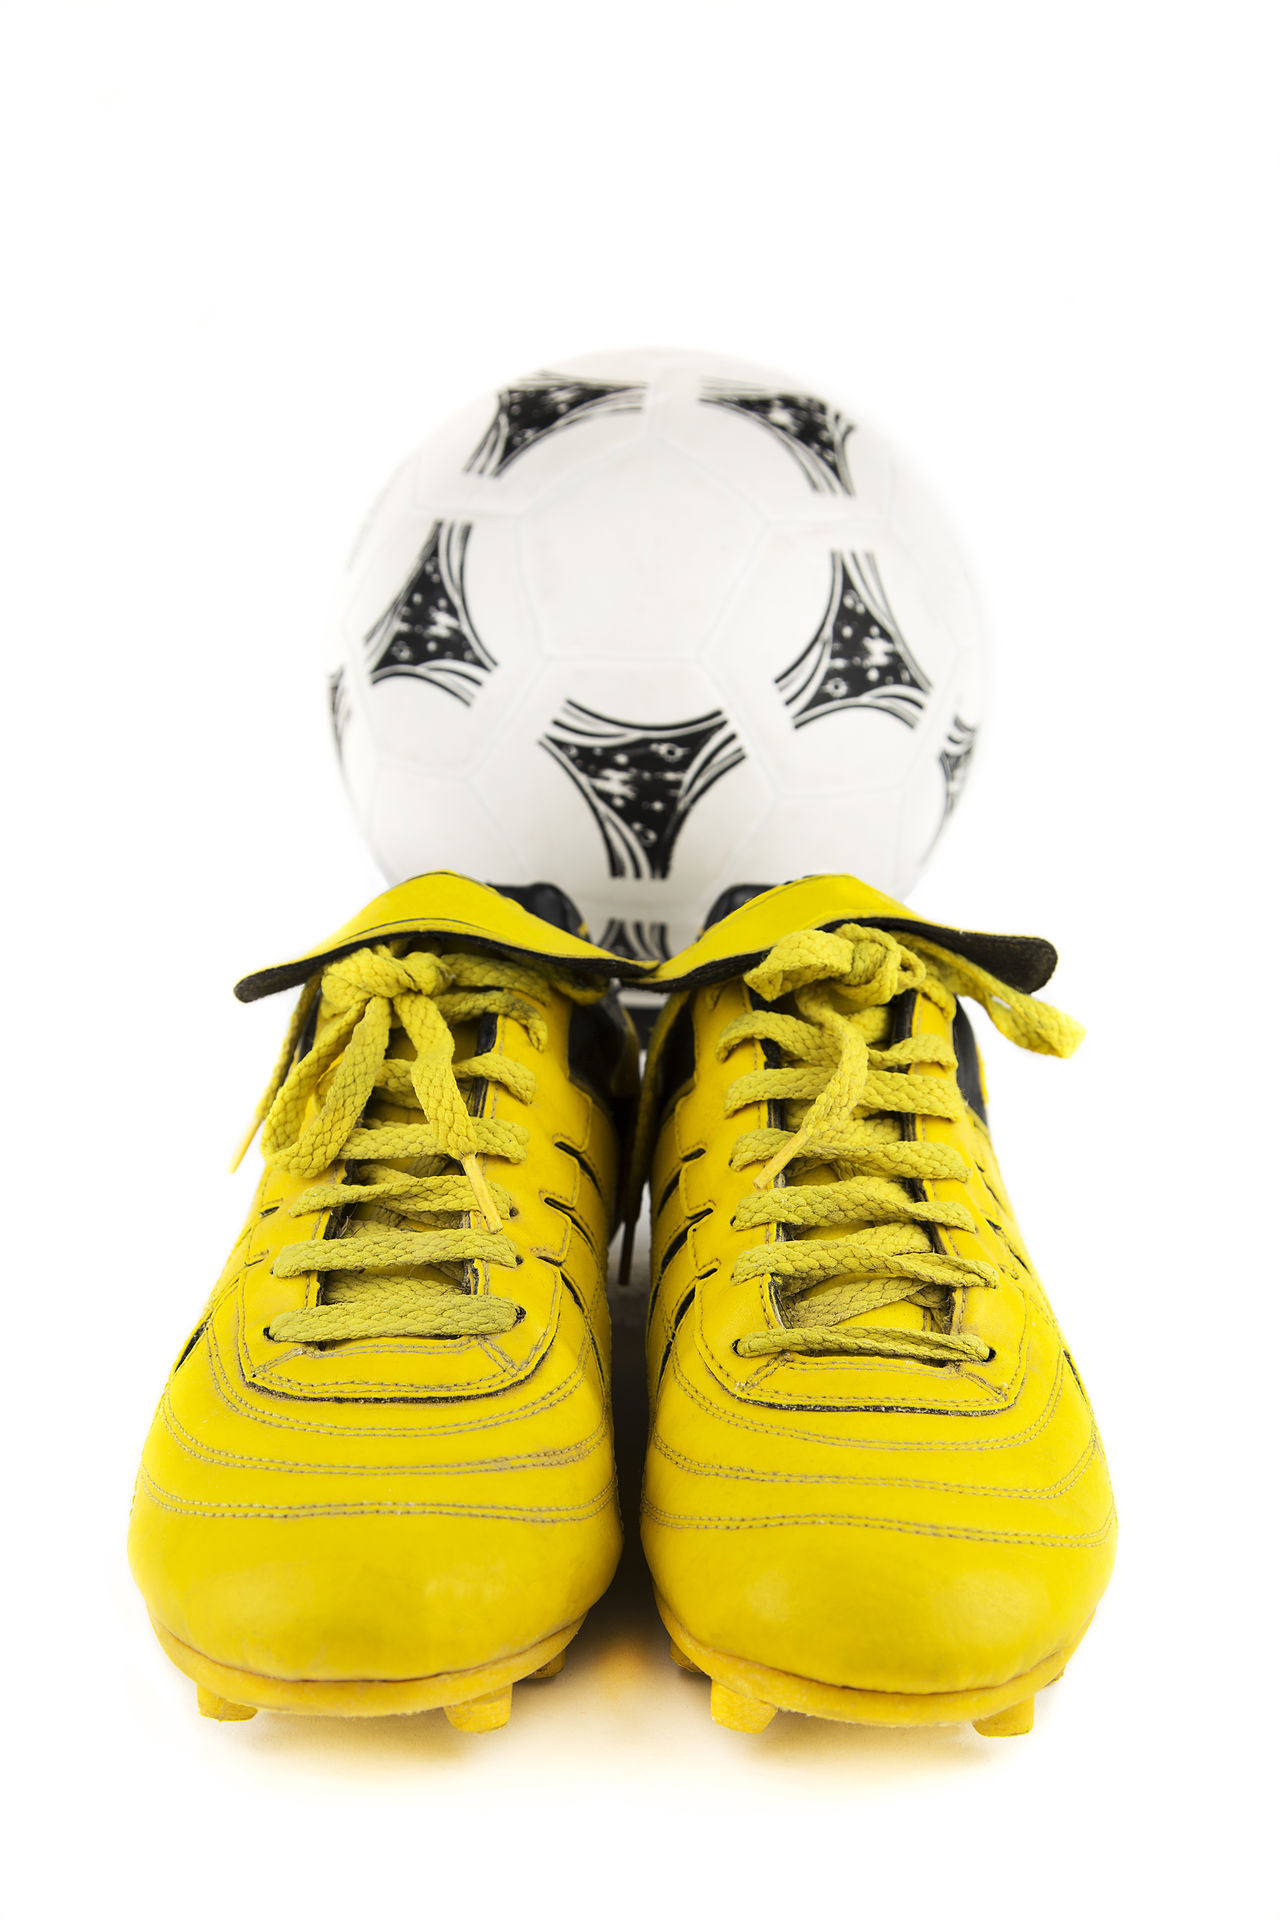 Team; B Black Background Close-up Colored Background Cut Out Football Gear Ideas No People Player Shoes; Soccer Still Life Studio Shot Two Objects White Background Yellow